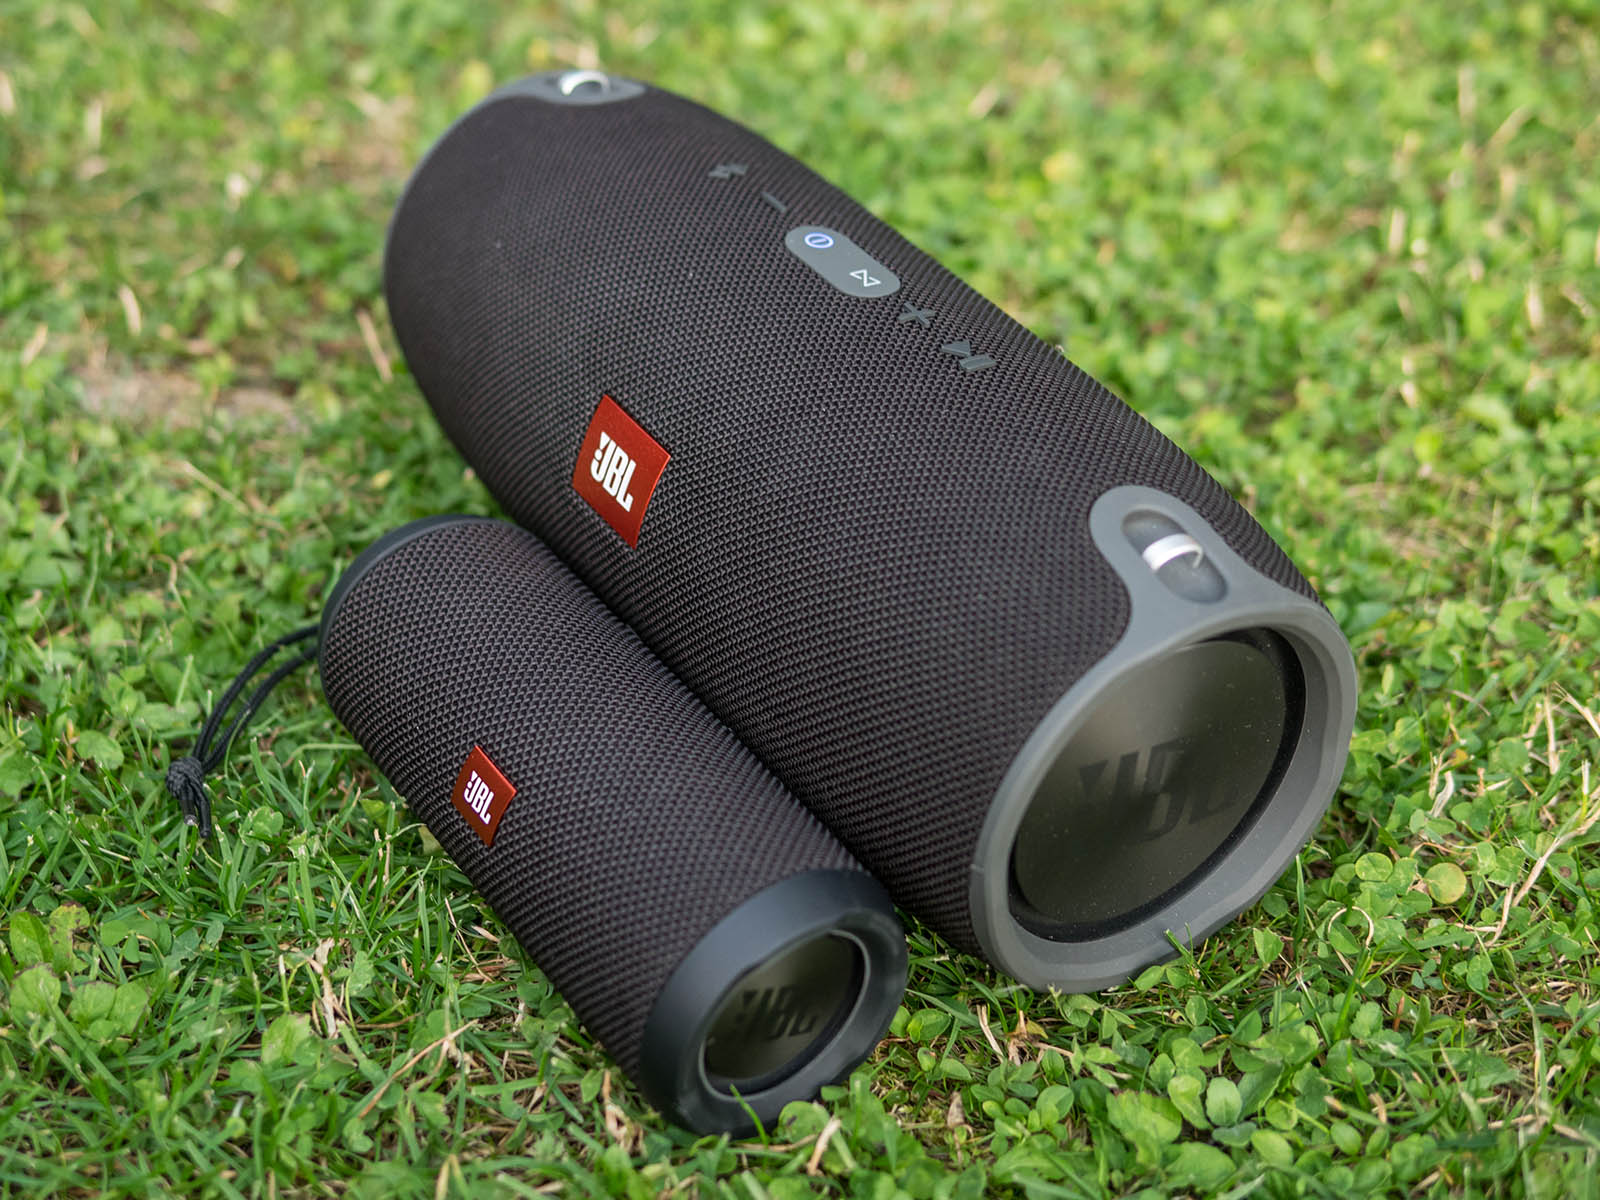 Oluv's Gadgets: Review: JBL Flip 3 - the UE Boom killer